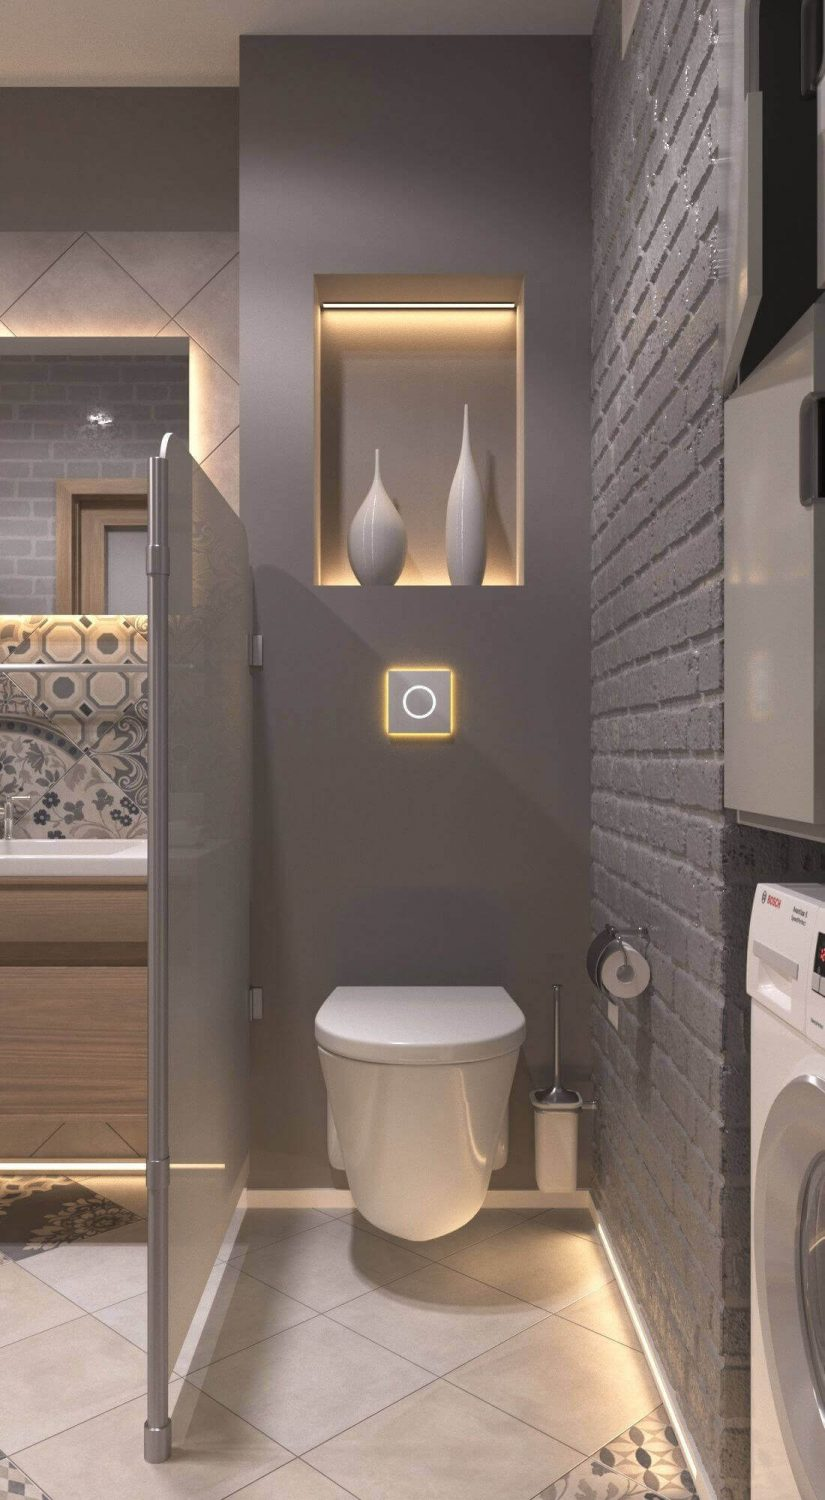 Bathroom Lighting Ideas LED Indirect Lighting In-Wall Niches - Harptimes.com